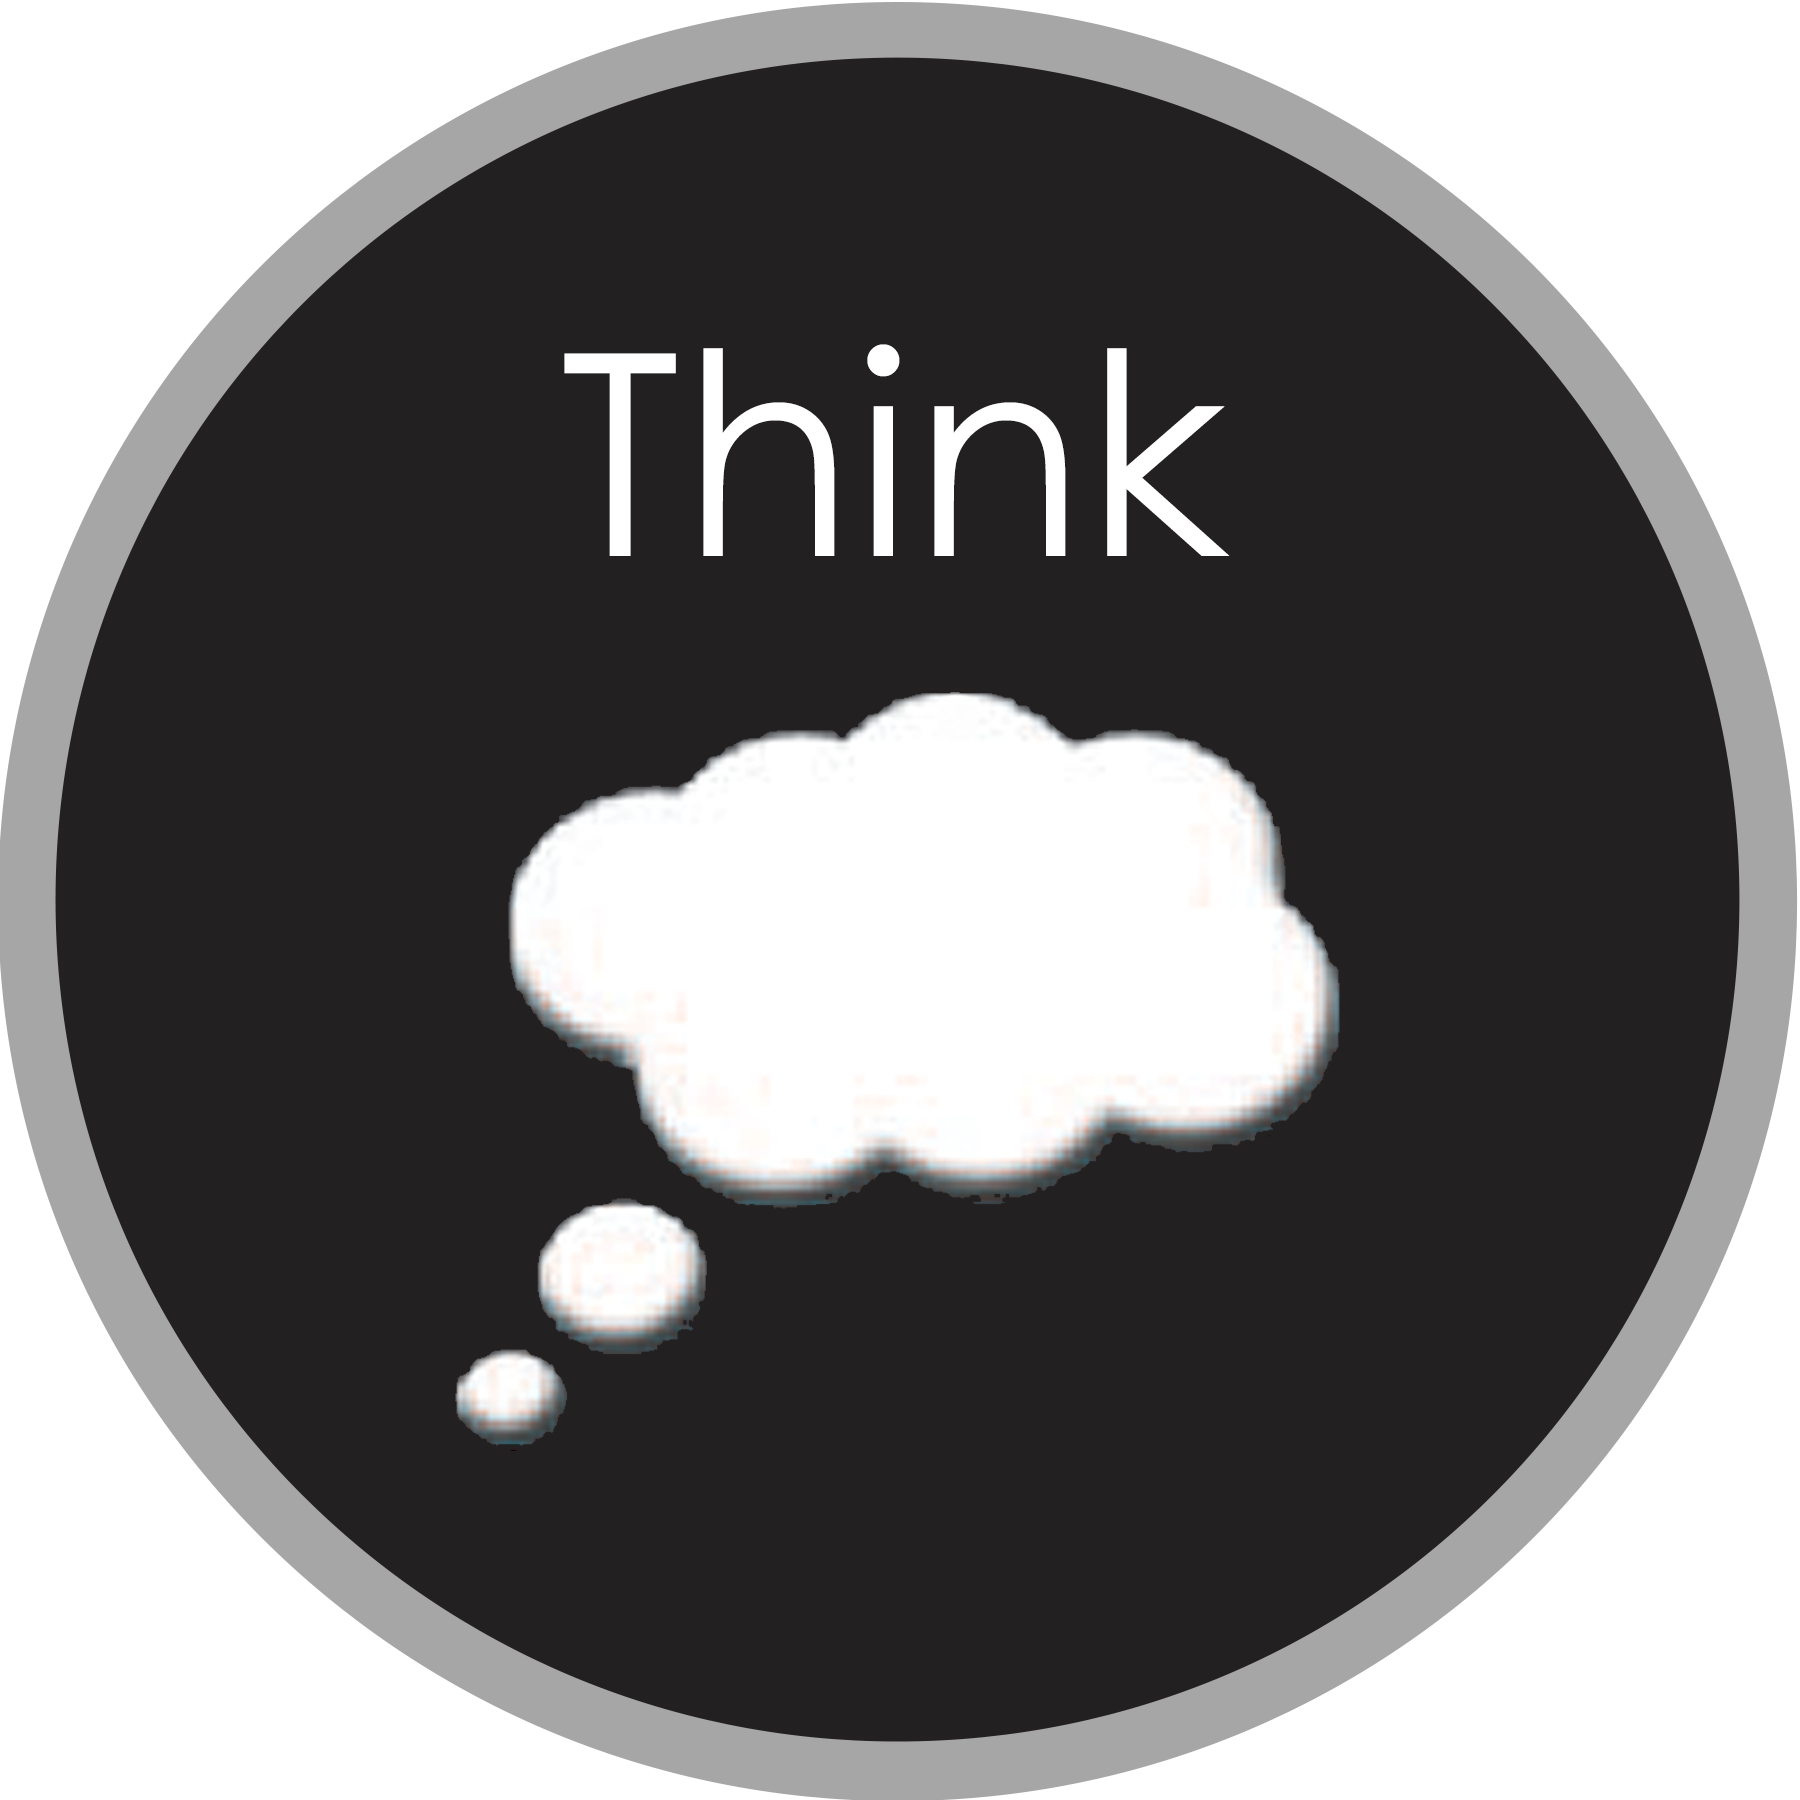 Think! It's Easy!